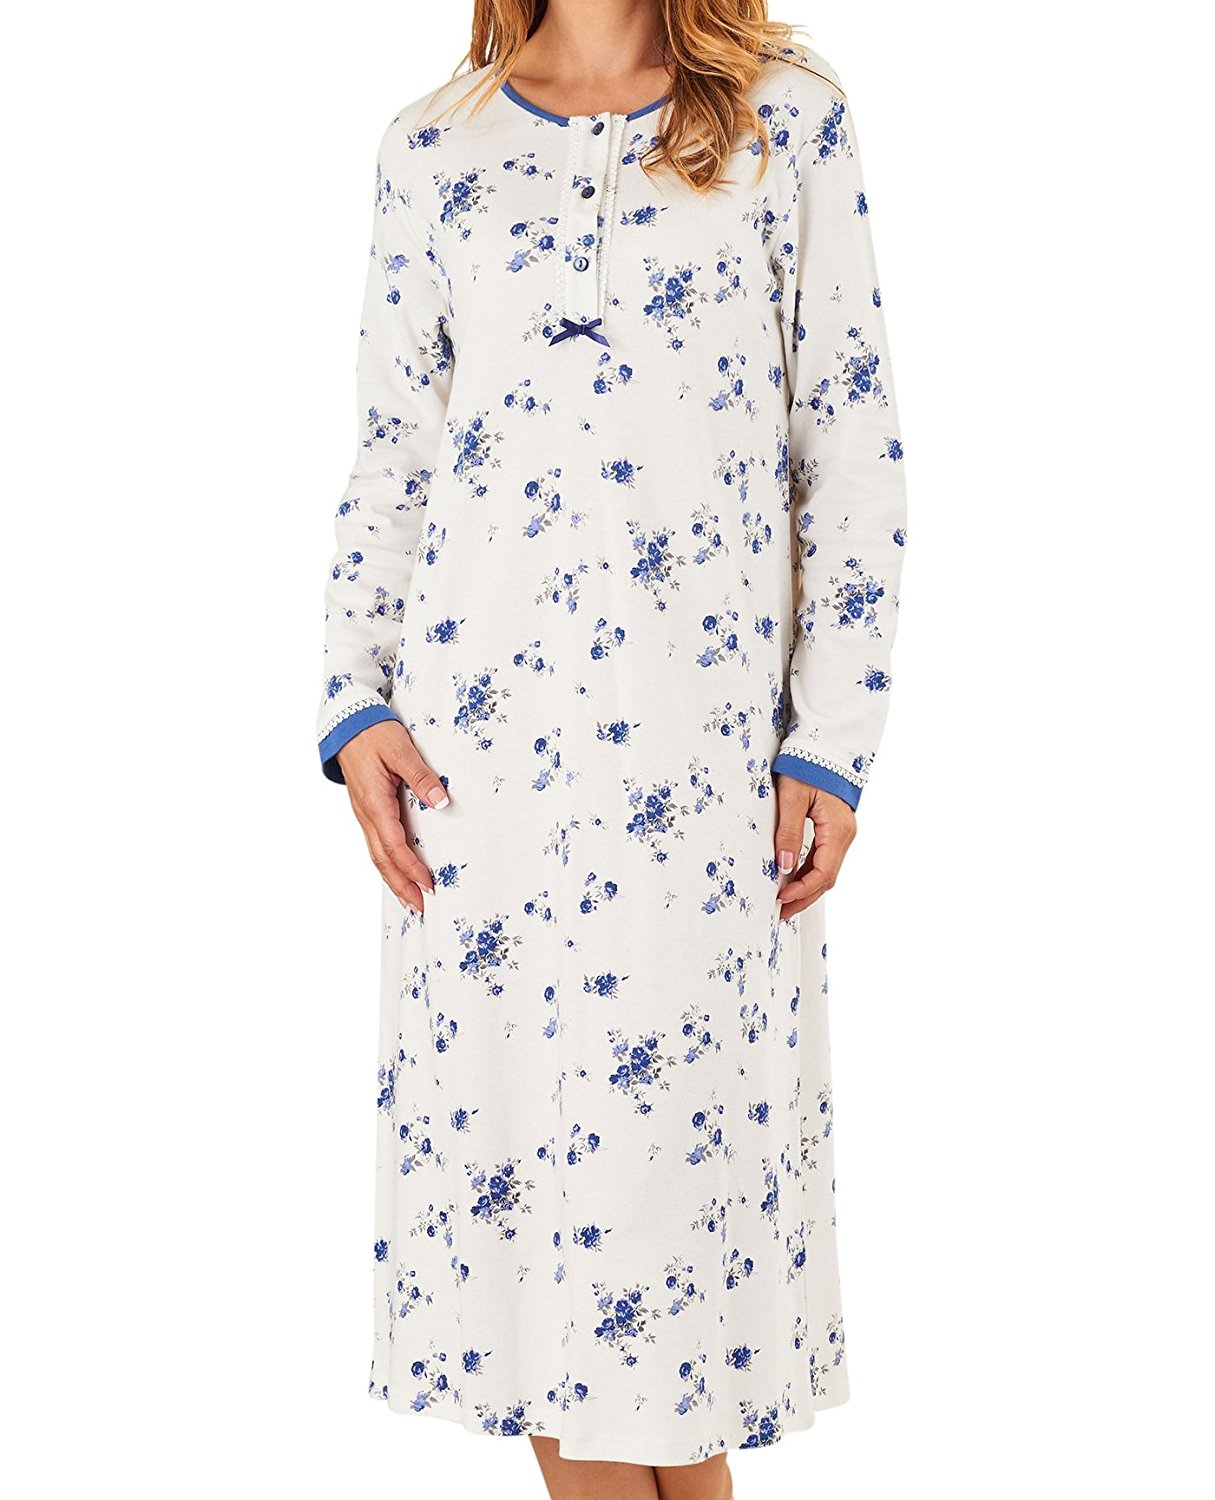 e601592793 Get Quotations · Slenderella Ladies Floral Nightdress Long Sleeved Jersey  Cotton Lace Trim Nightie (Blue or Pink)